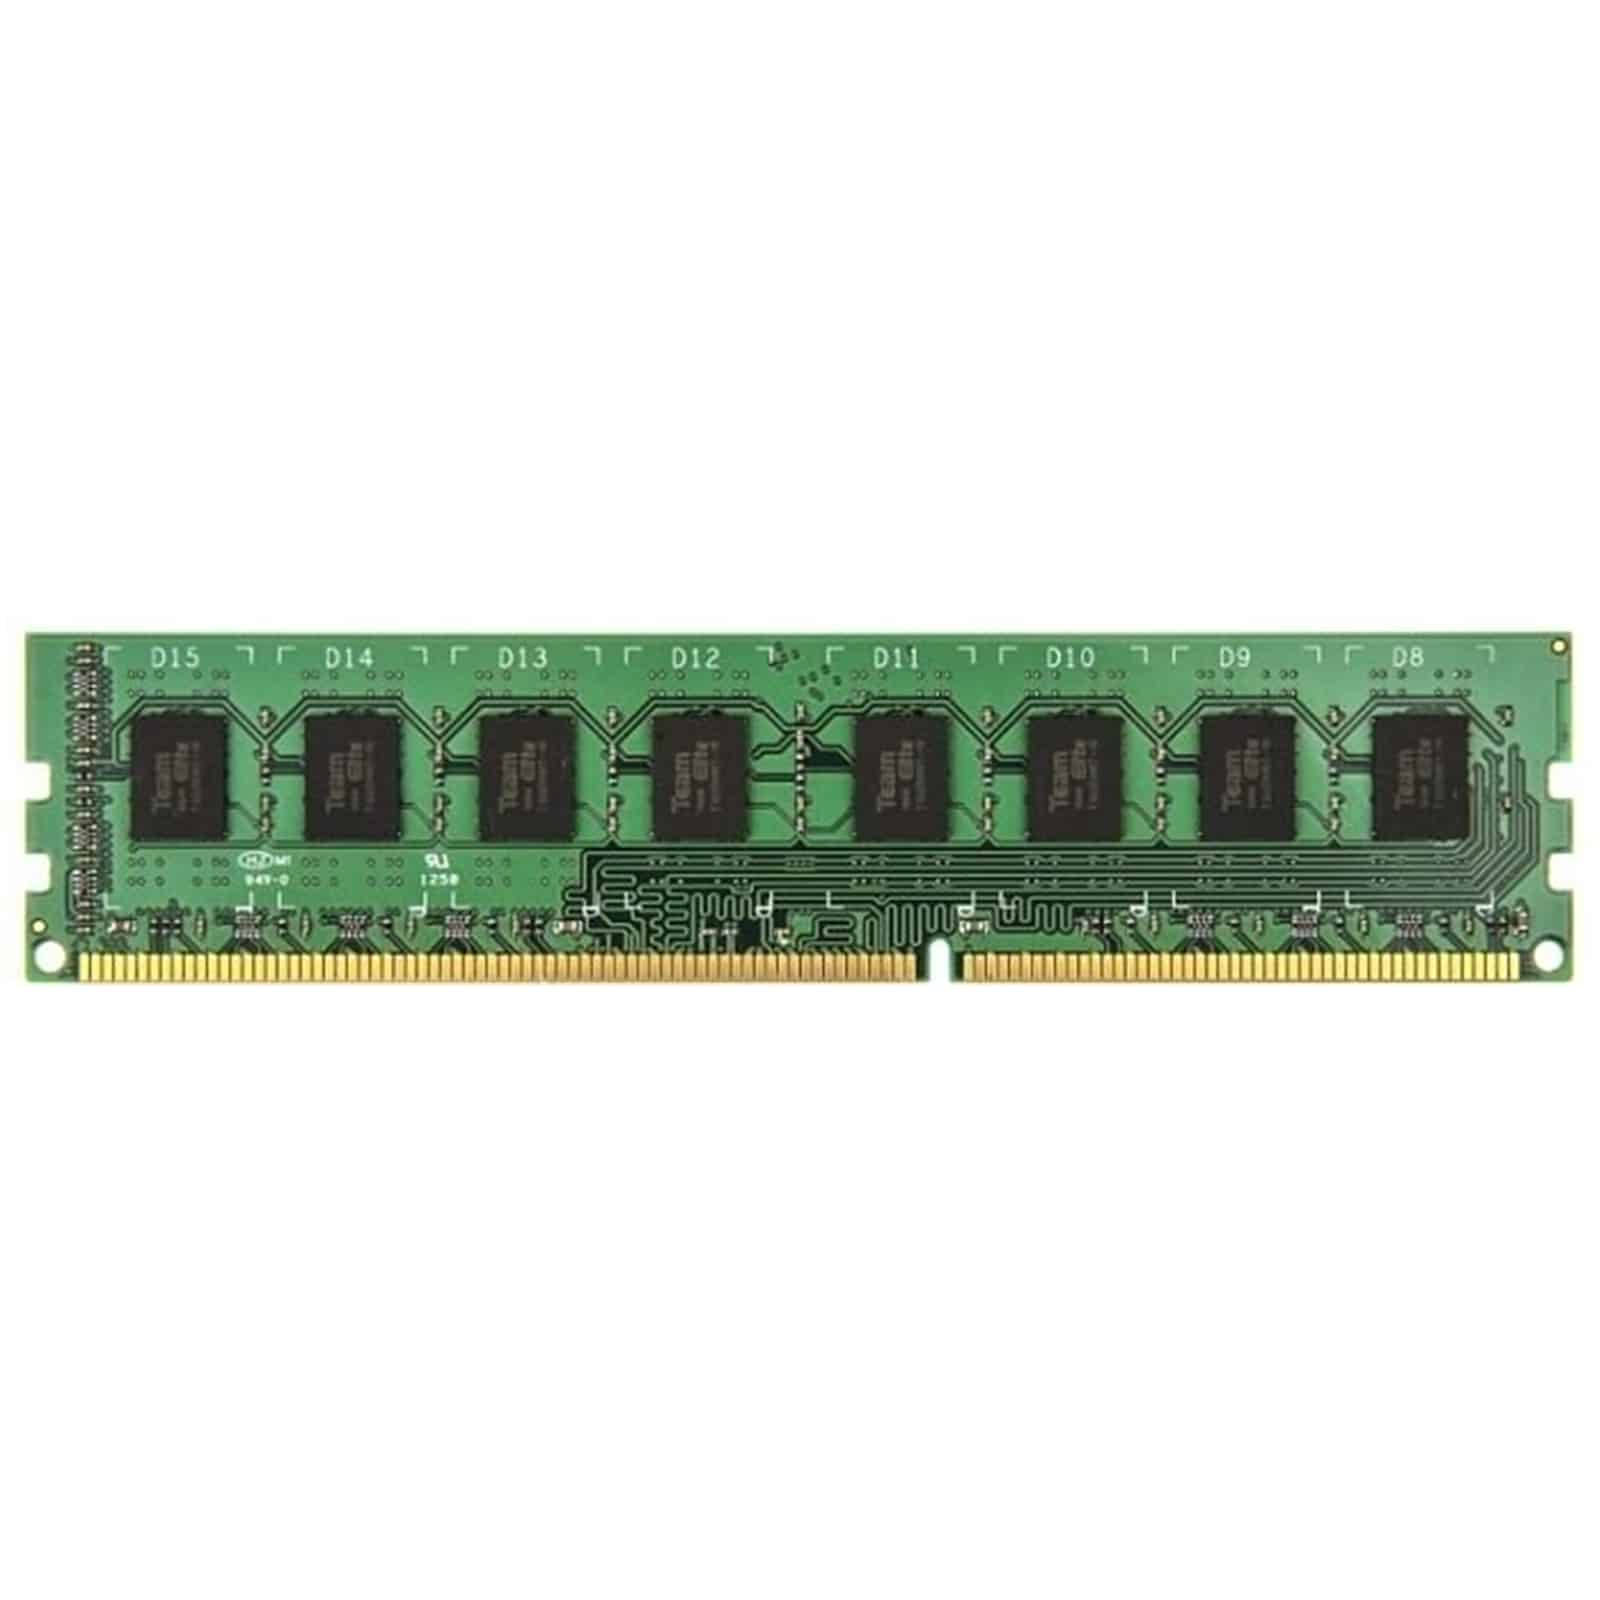 Team Elite 8GB NO Heatsink (1×8) DDR3 1600MHz